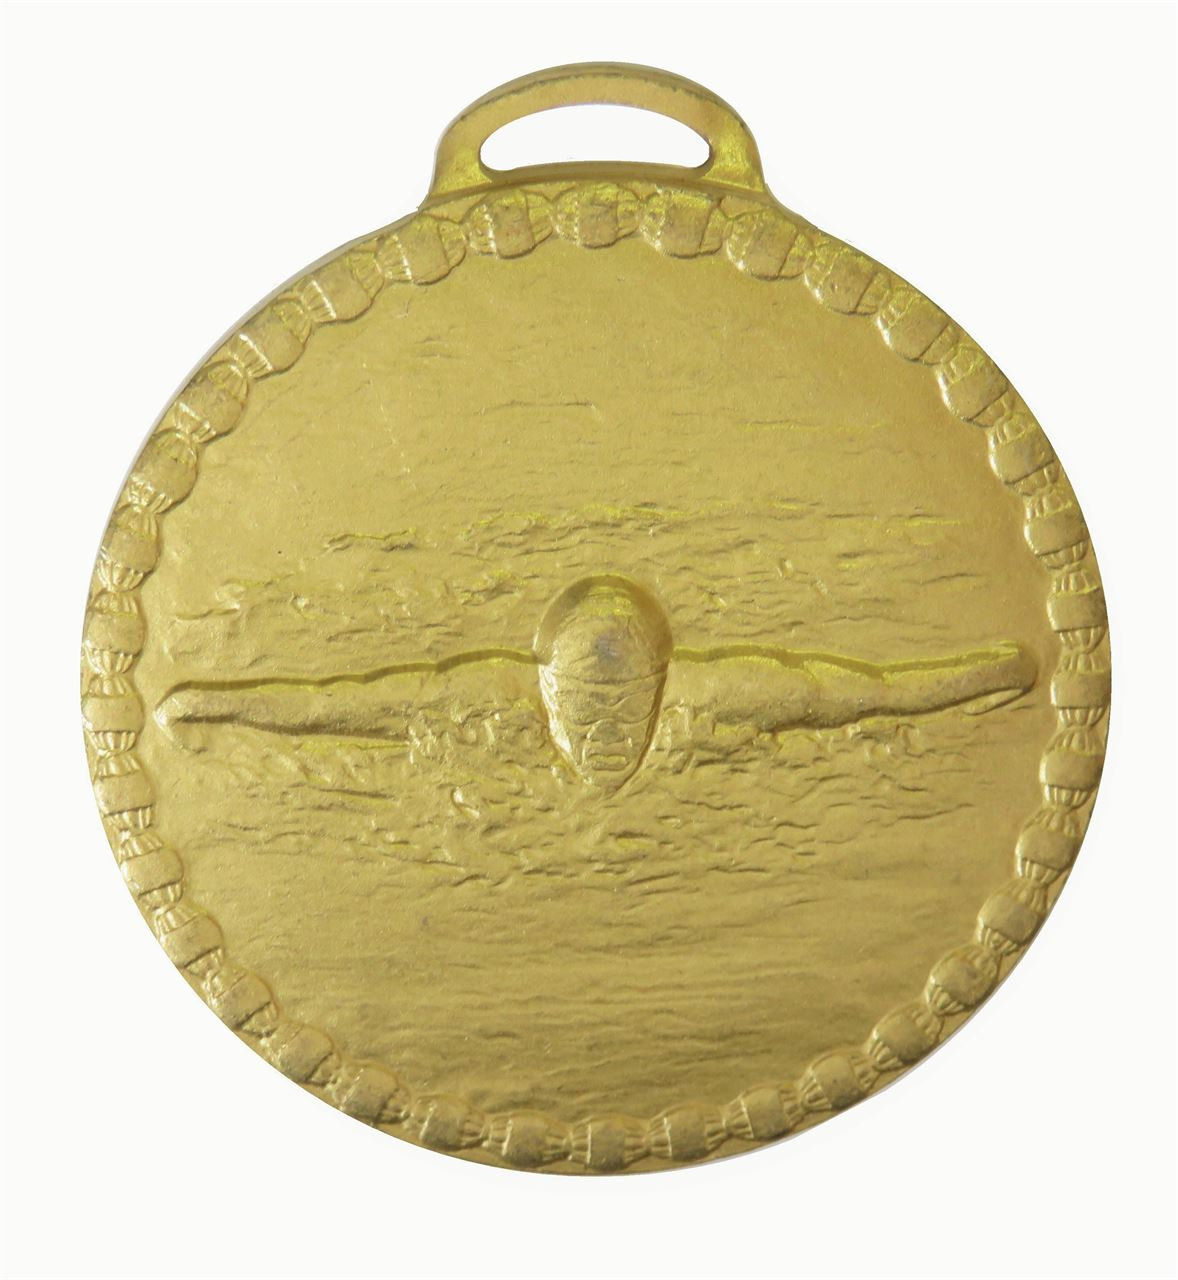 Gold Male Butterfly Stroke Value Swimming Medal (size: 50mm) - 676E